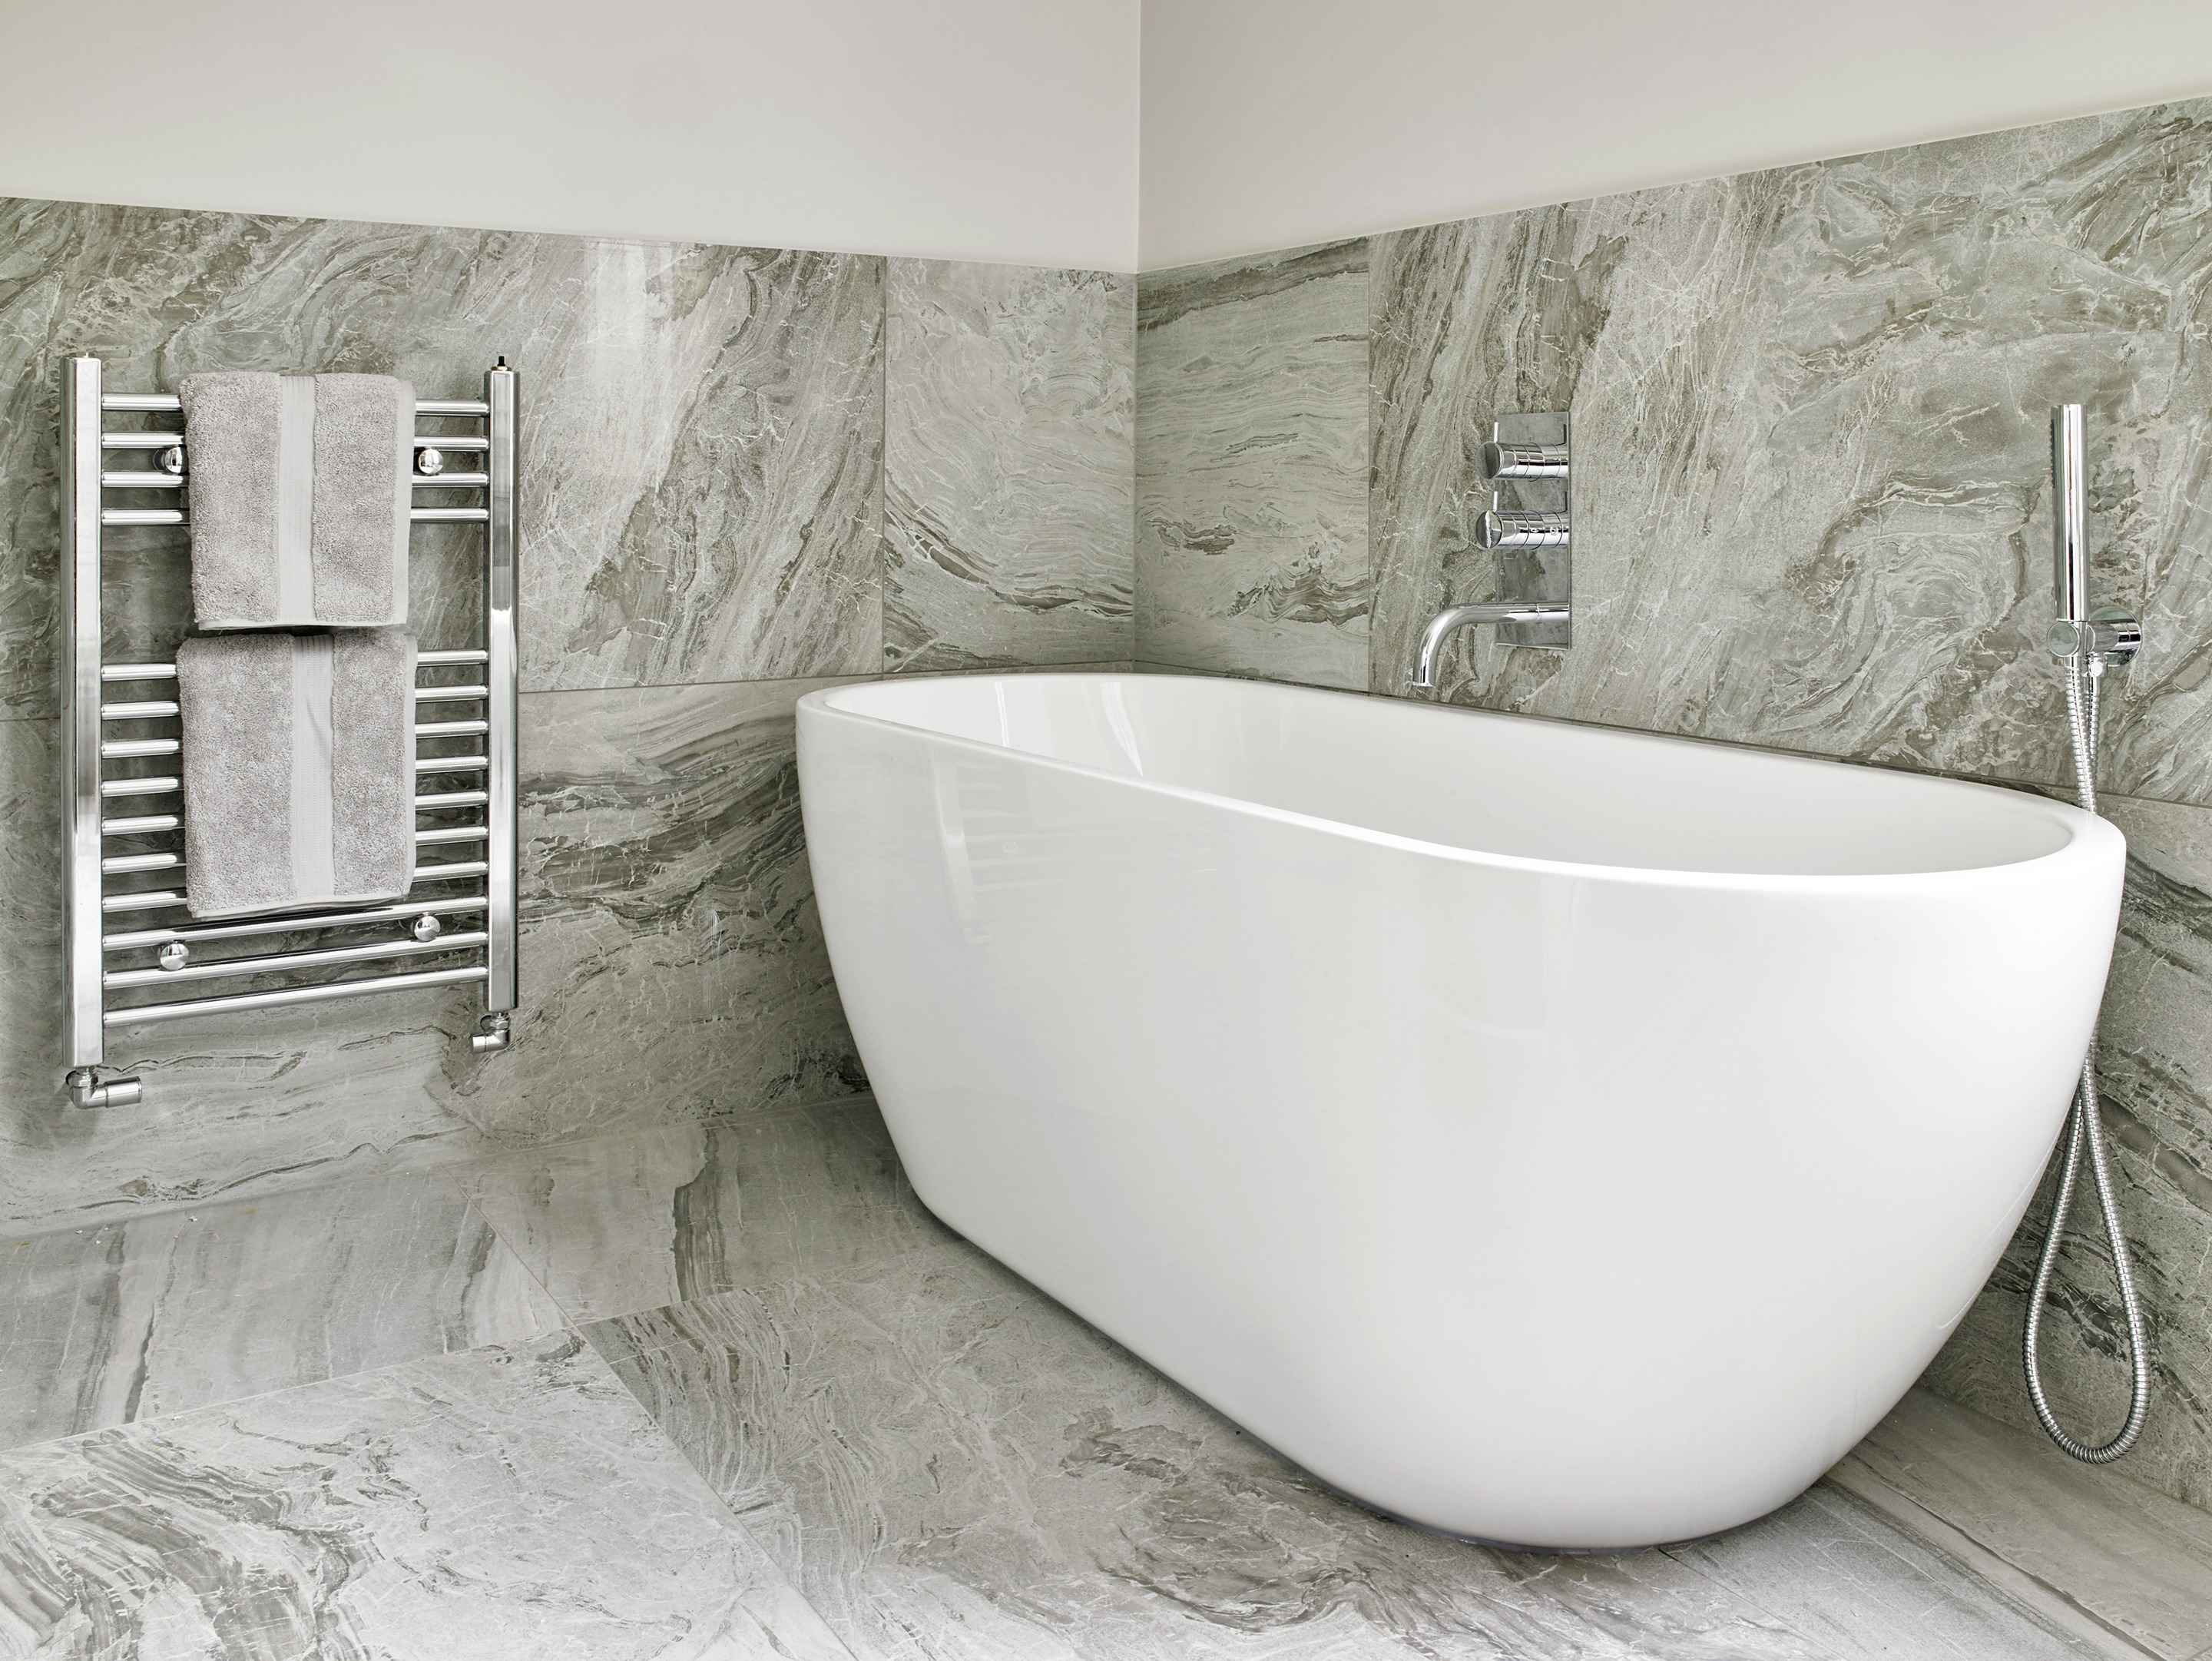 Luxury freestanding bath